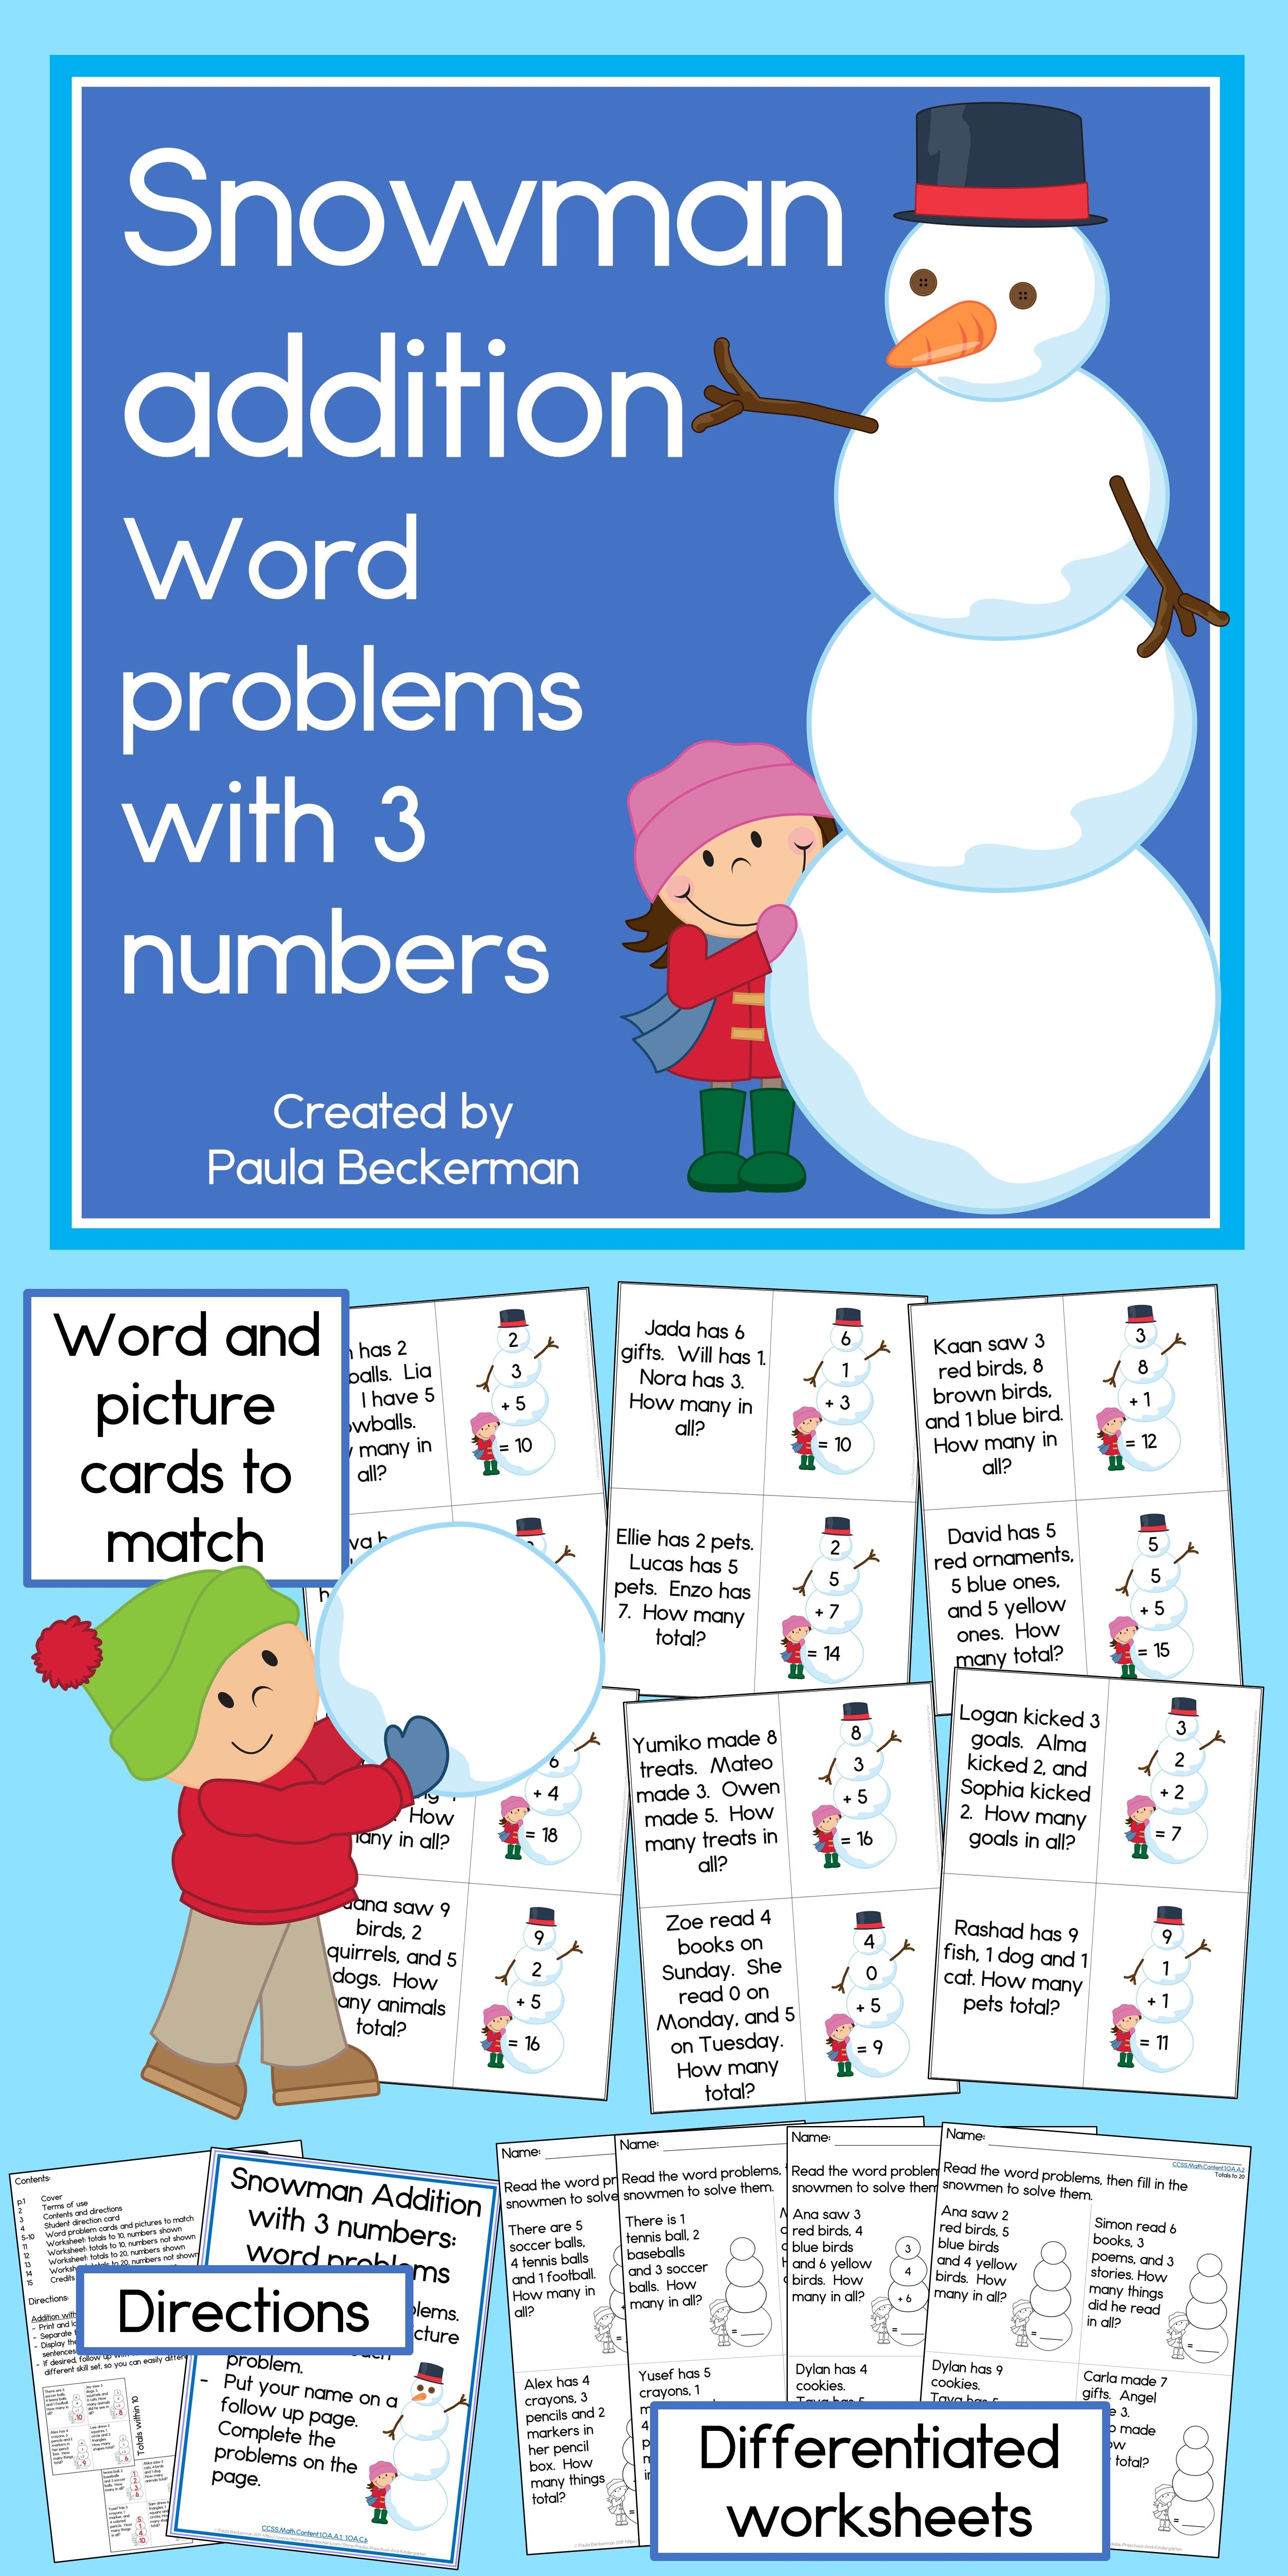 Snowman Addition Word Problems with 3 numbers | Math, Word problems ...